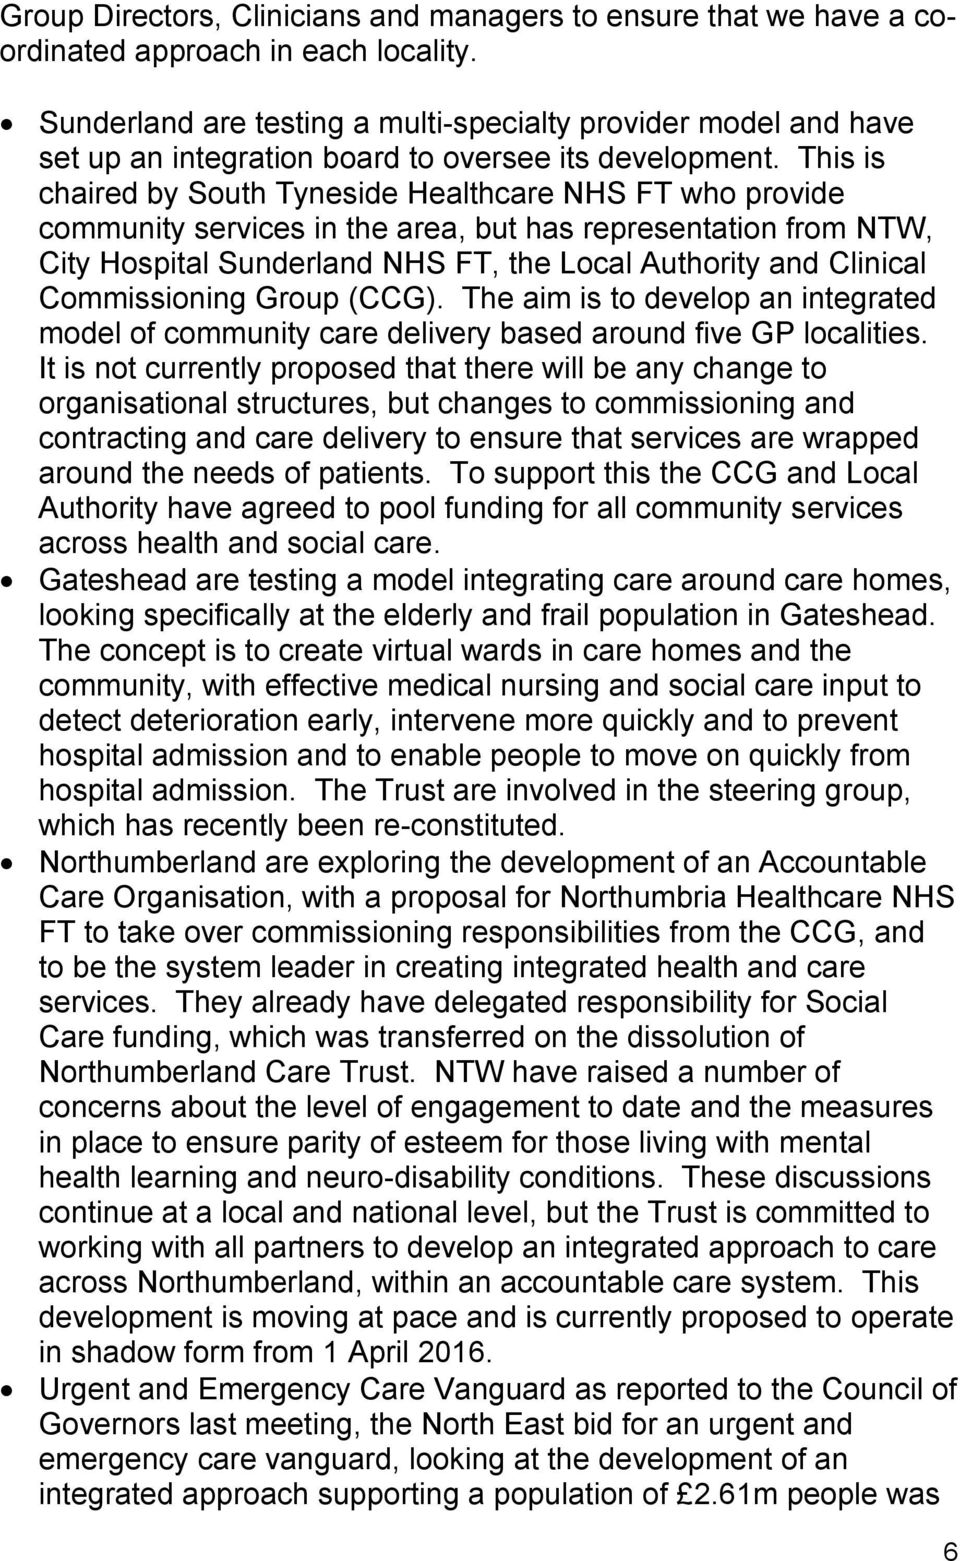 This is chaired by South Tyneside Healthcare NHS FT who provide community services in the area, but has representation from NTW, City Hospital Sunderland NHS FT, the Local Authority and Clinical